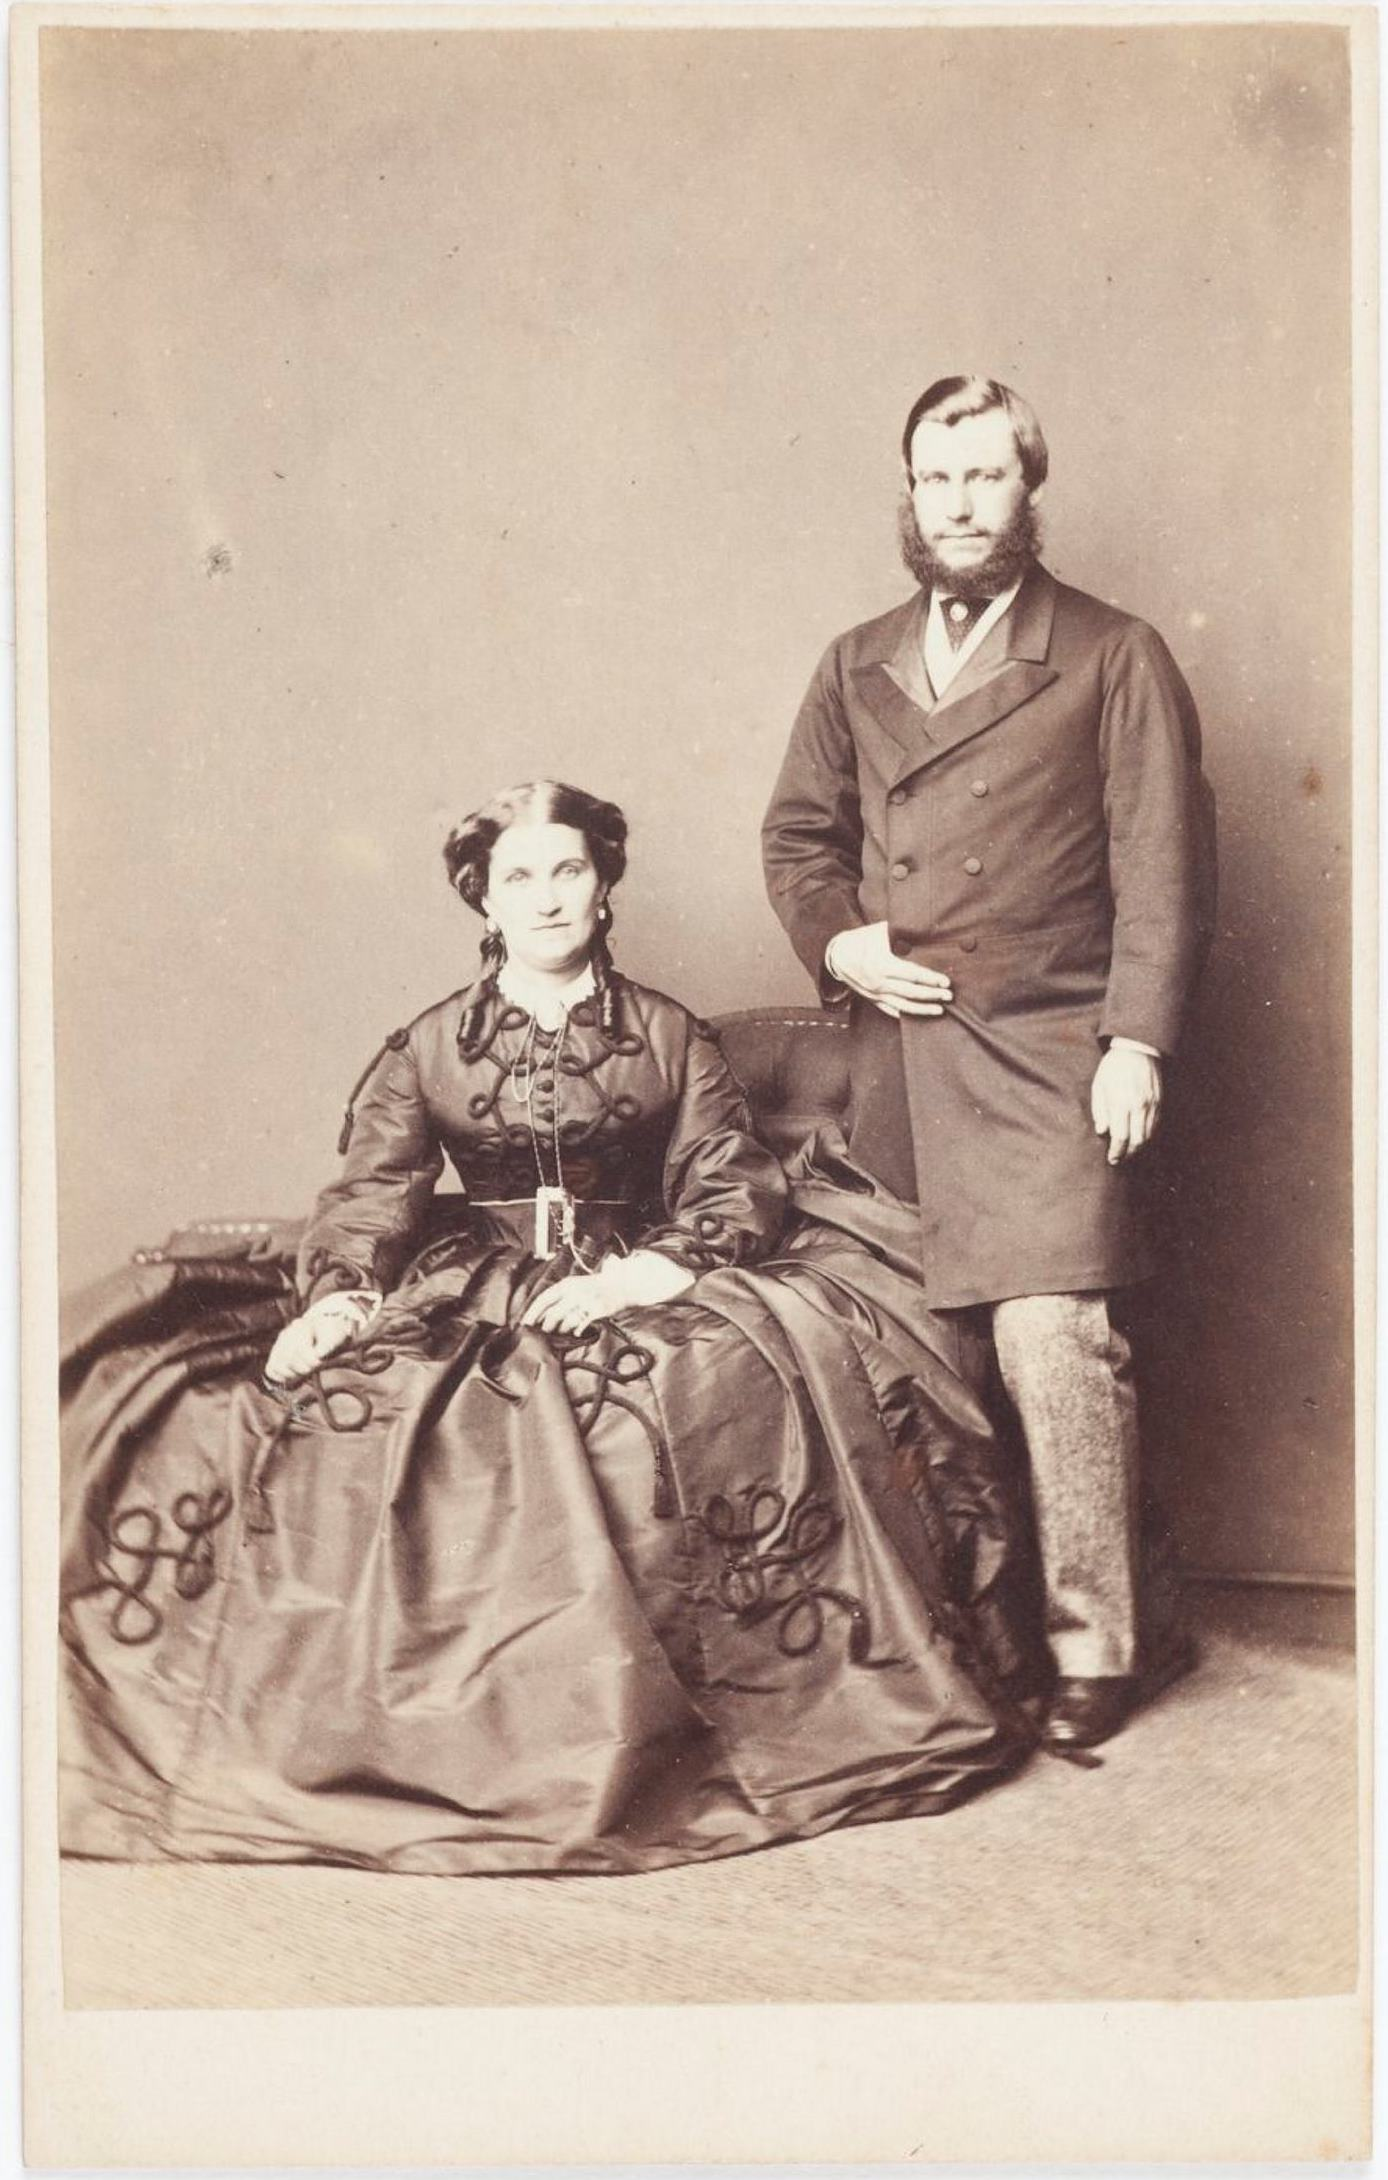 Jane Emma Terry, nee Peters (1845-1921), and her husband Richard Rouse Terry (1838-1898) in London, around 1864 / William Telfer, photographer